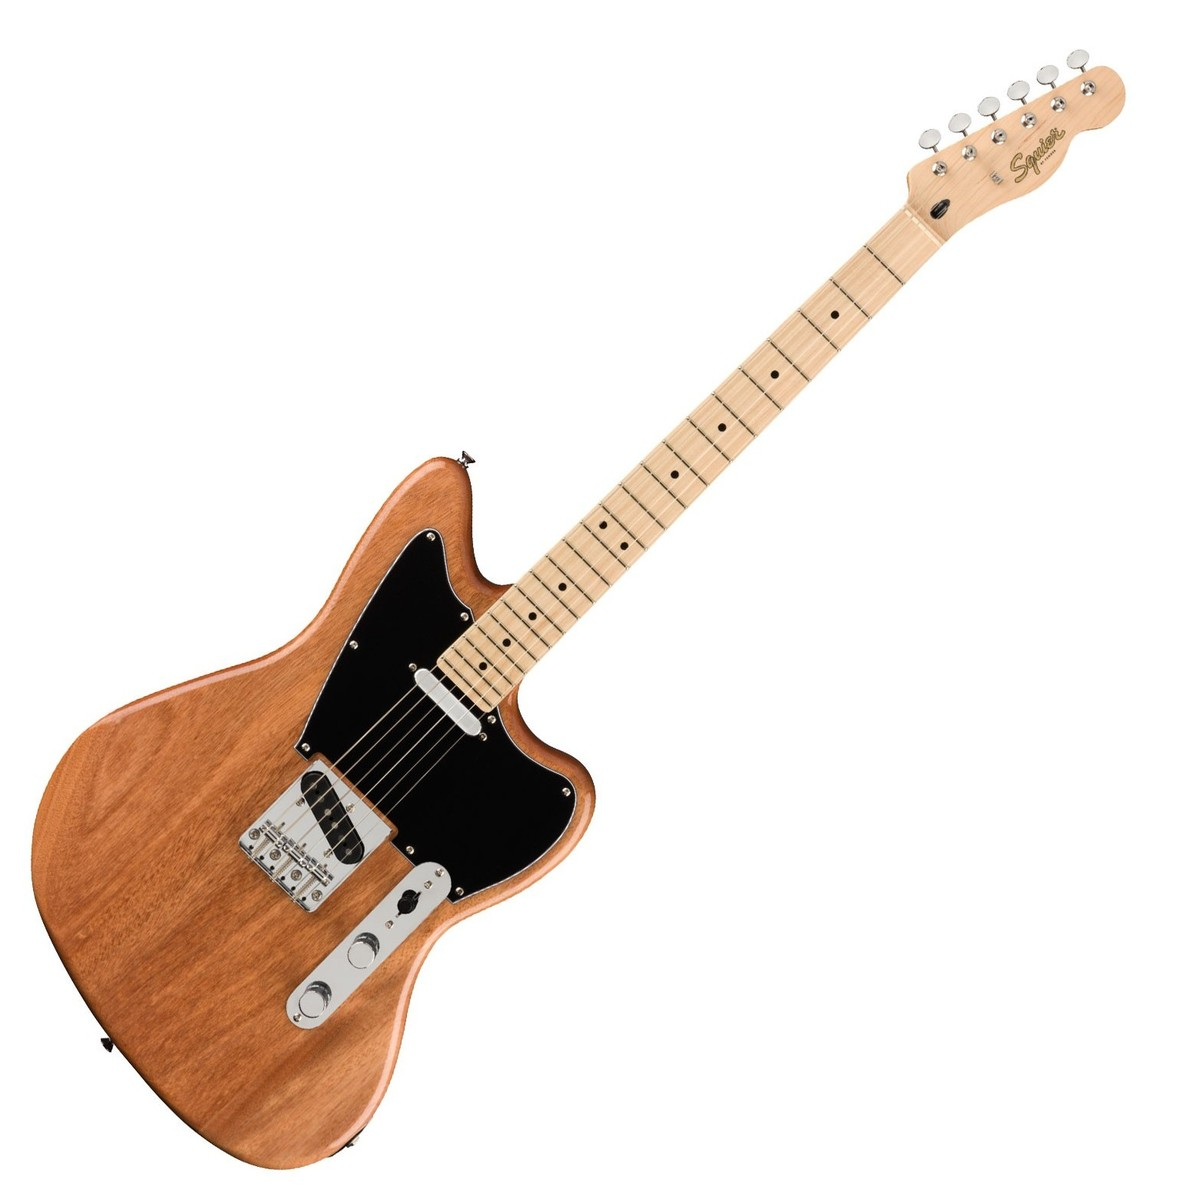 Squier Paranormal Offset Telecaster, Natural